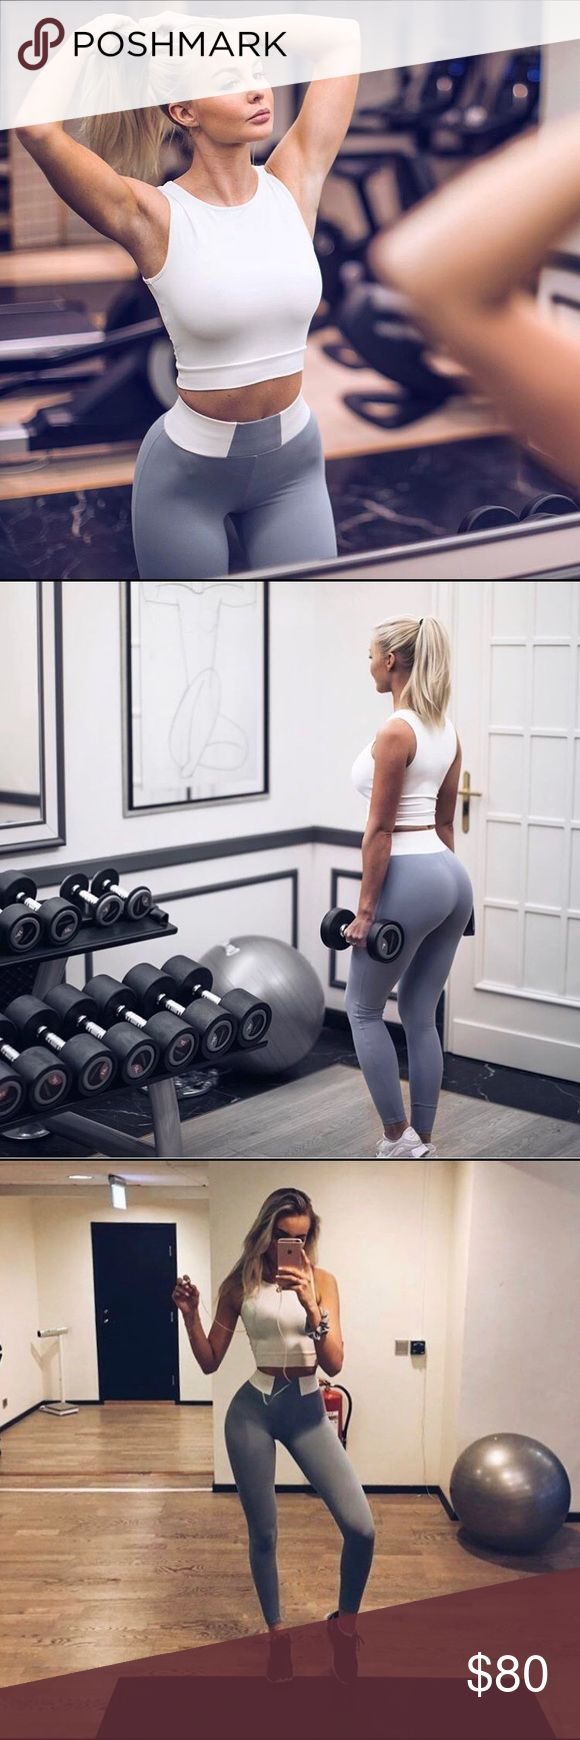 High Waisted Grey Gym Leggings Brand new grey sports leggings with tags. Comes in stretchy material and flattering fit. bring sportswear Pants Leggings